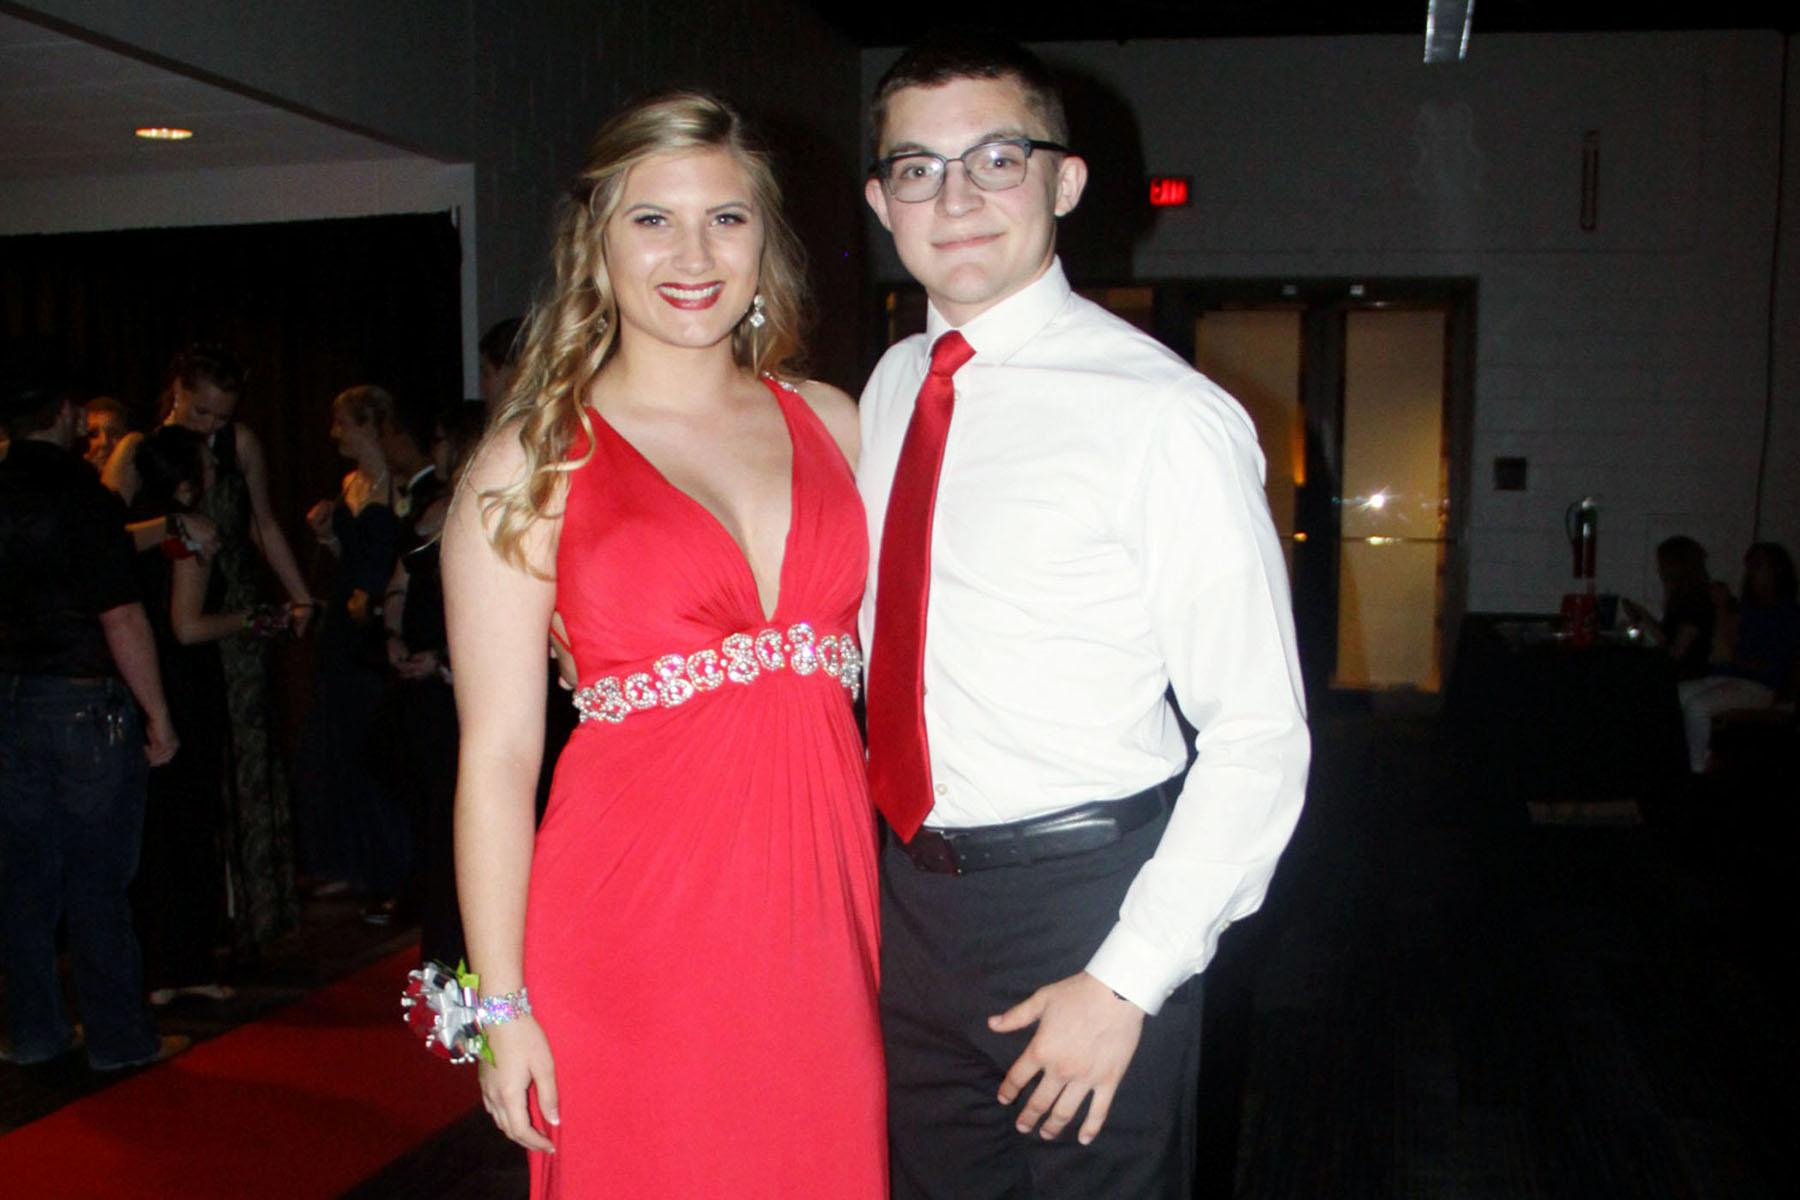 red-dress-couple-nf